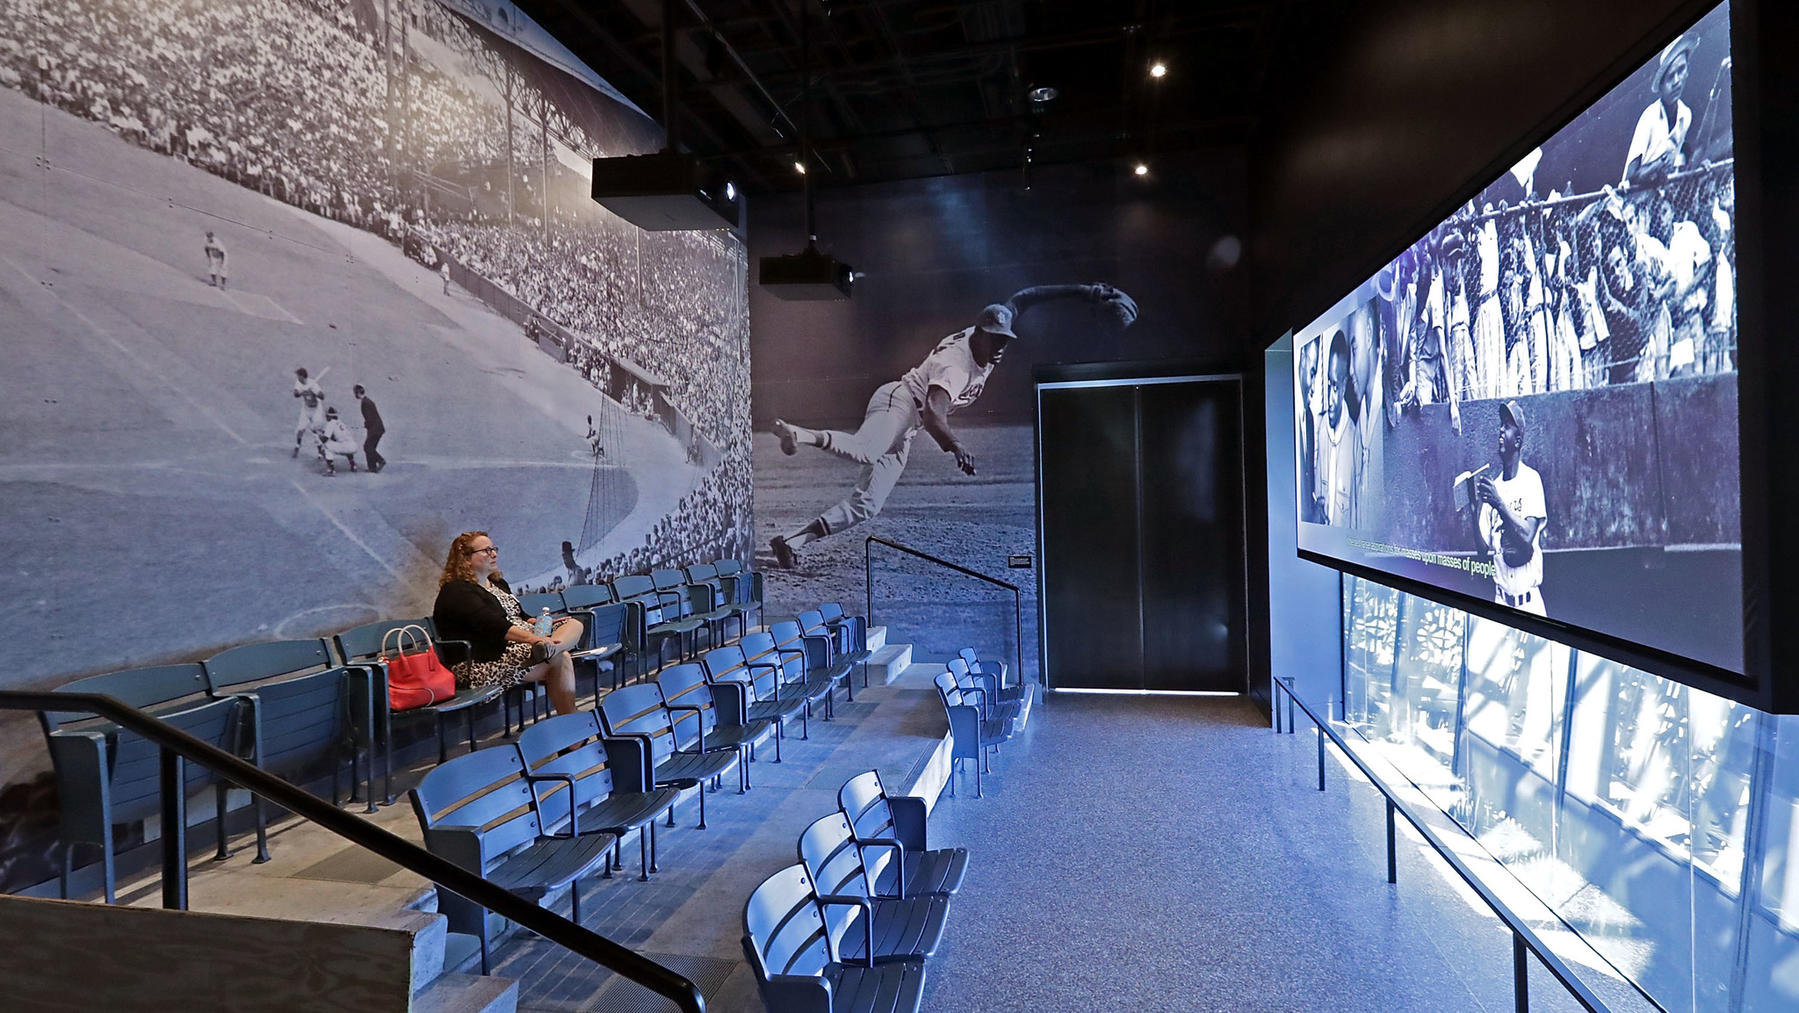 BASEBALL THEATER.  The chairs in this theater and recreated from a Negro League stadium –Negro Leagues were among the most important businesses in black America during the first half of the 20th century.   Photo credit: Chip Somodevilla / Getty Images